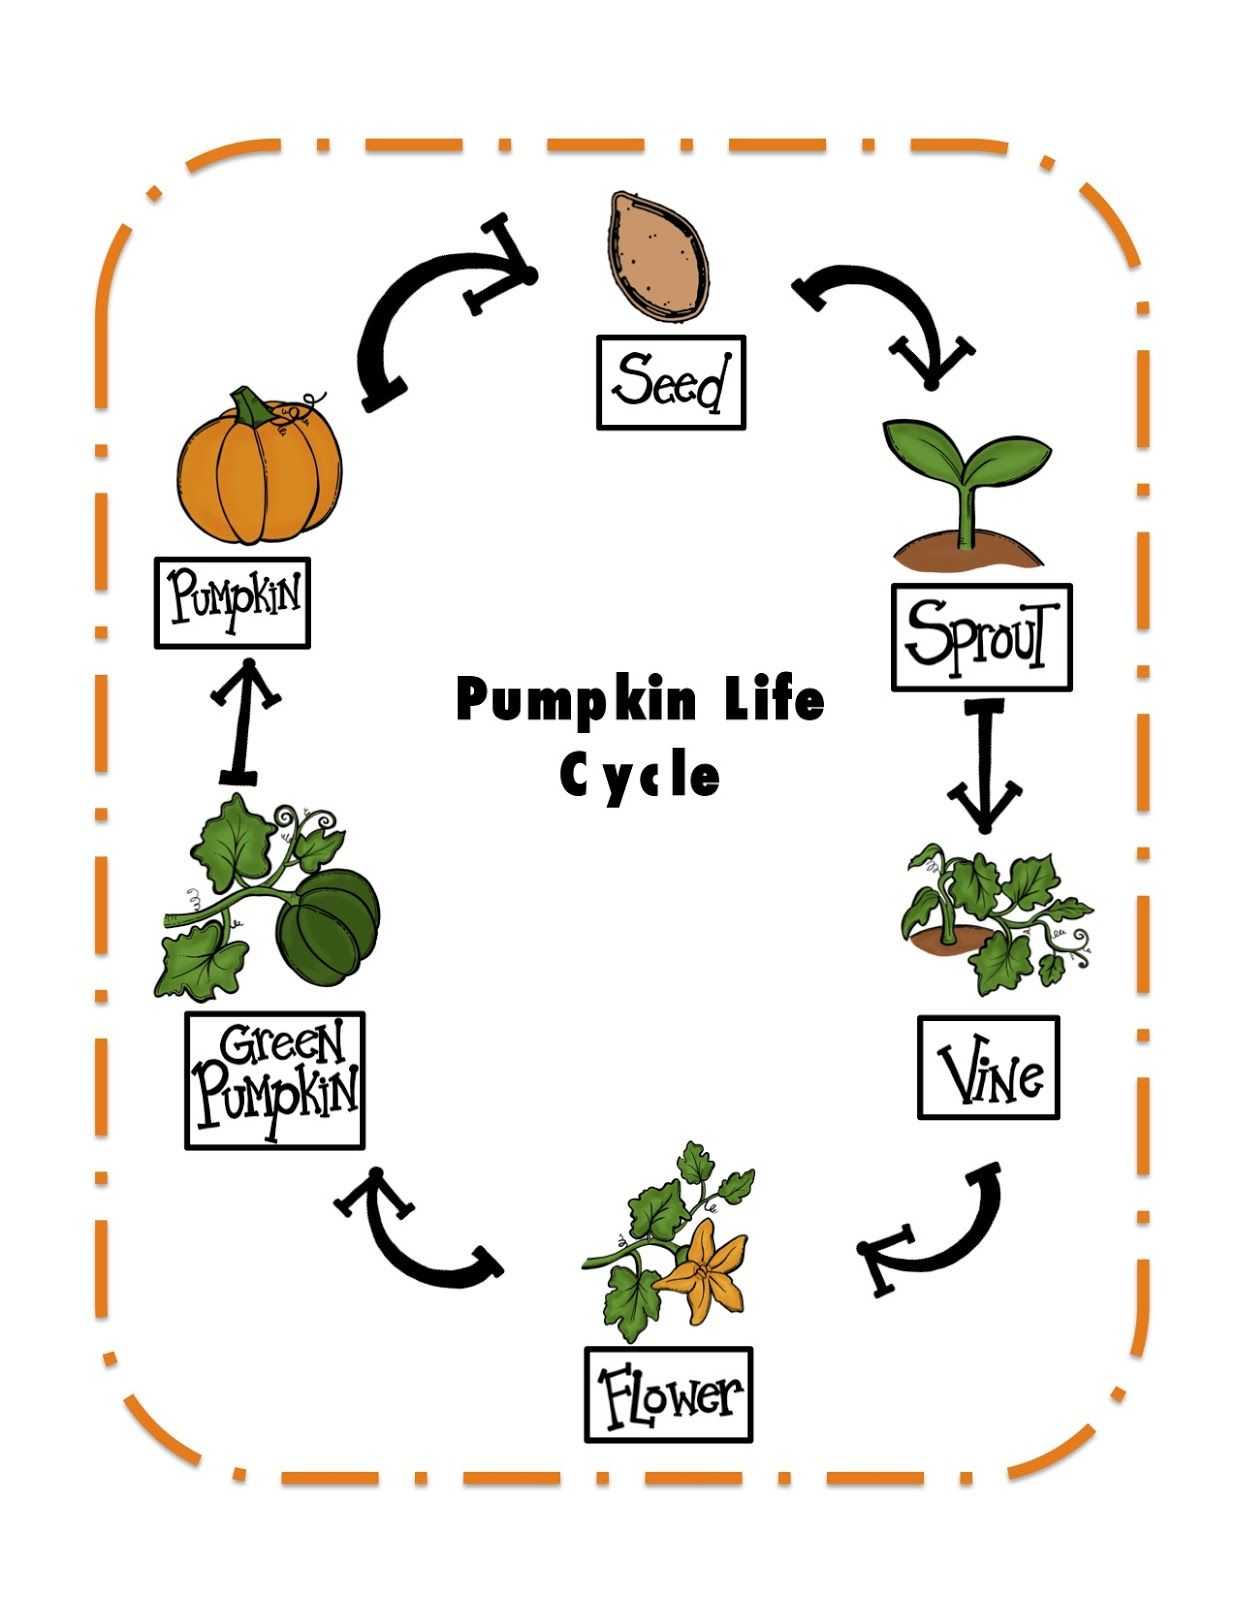 worksheet Life Cycle Of A Pumpkin Worksheet 1000 images about informational text on pinterest pumpkins life cycles and pumpkin cycle